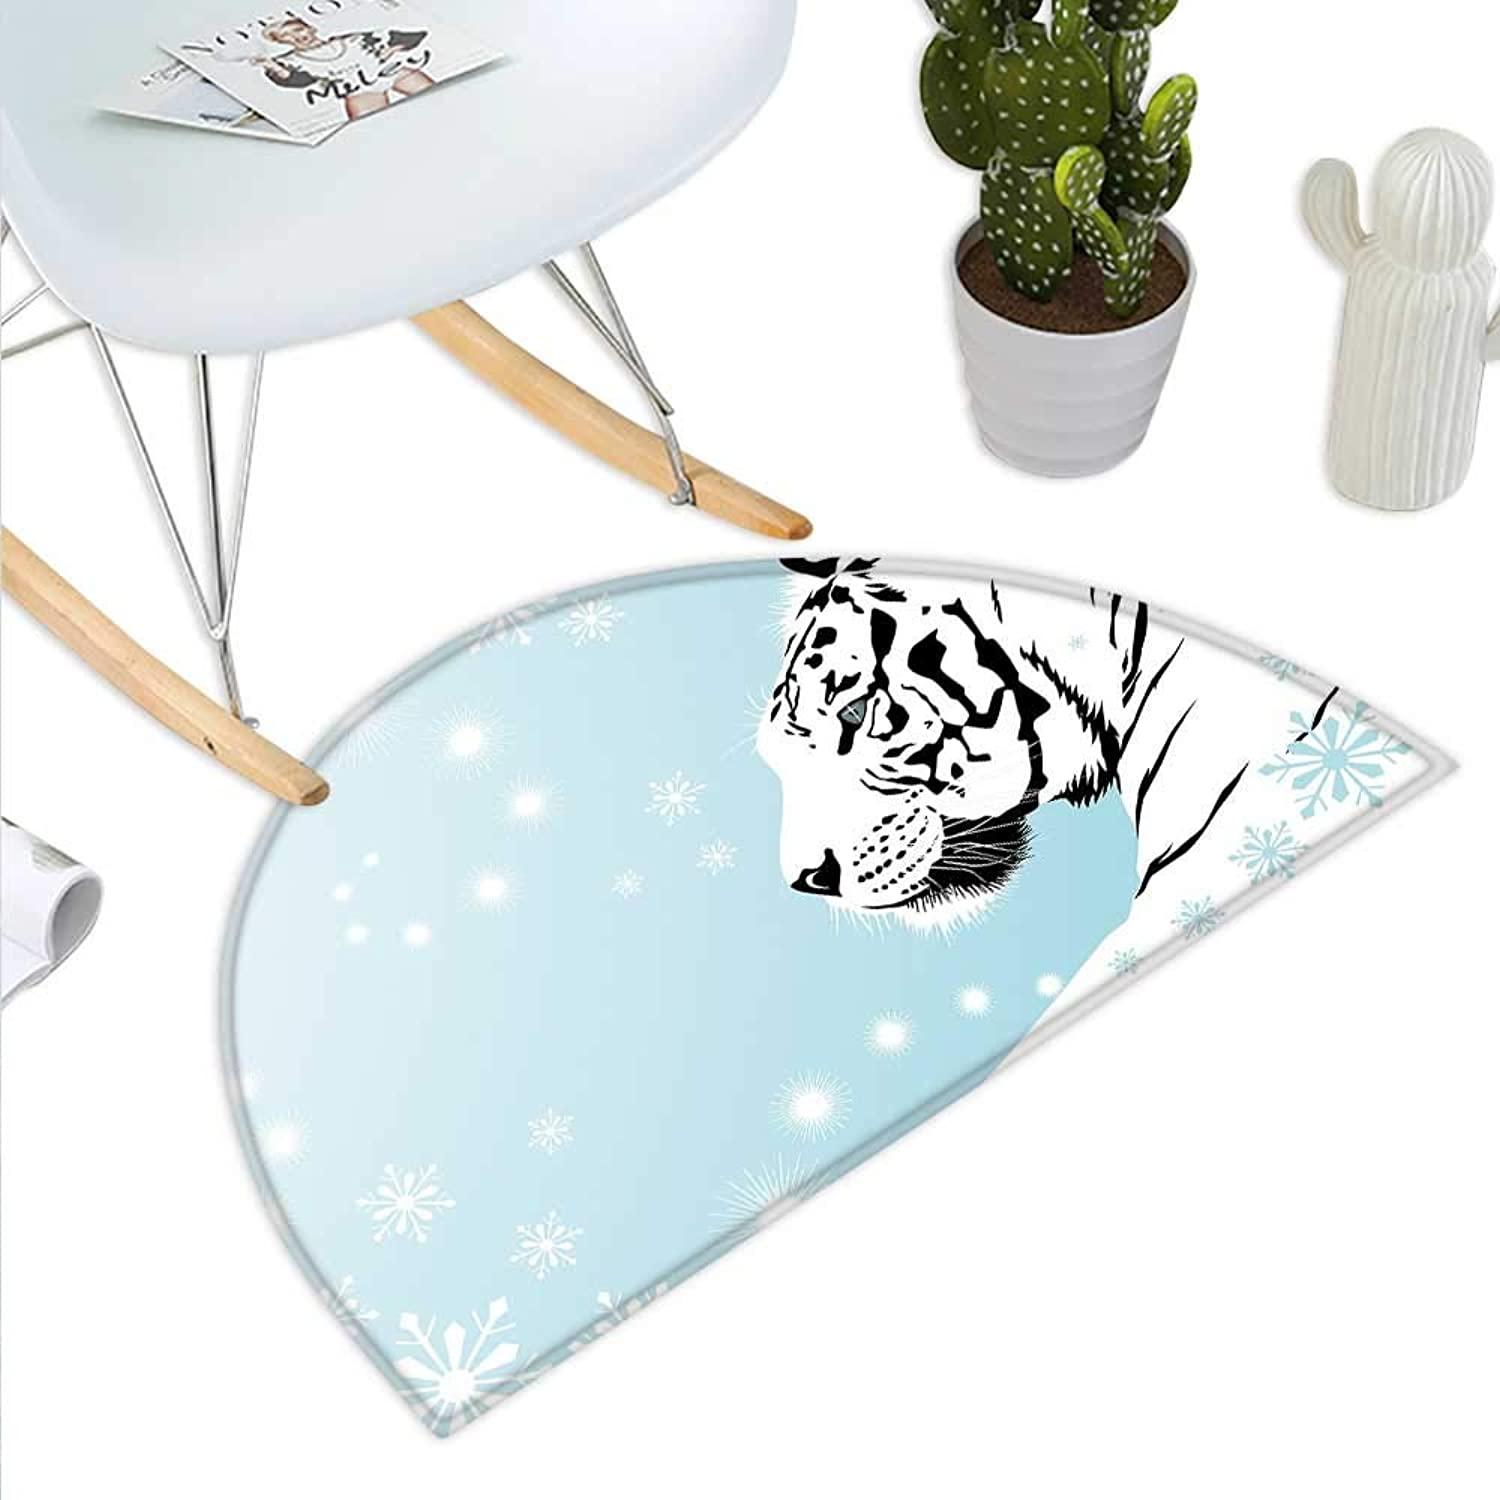 Tiger Semicircle Doormat White Bengal Beast Lies Against Snowy Background Beautiful Eyes Majestic Nature Halfmoon doormats H 43.3  xD 64.9  Turquoise Black